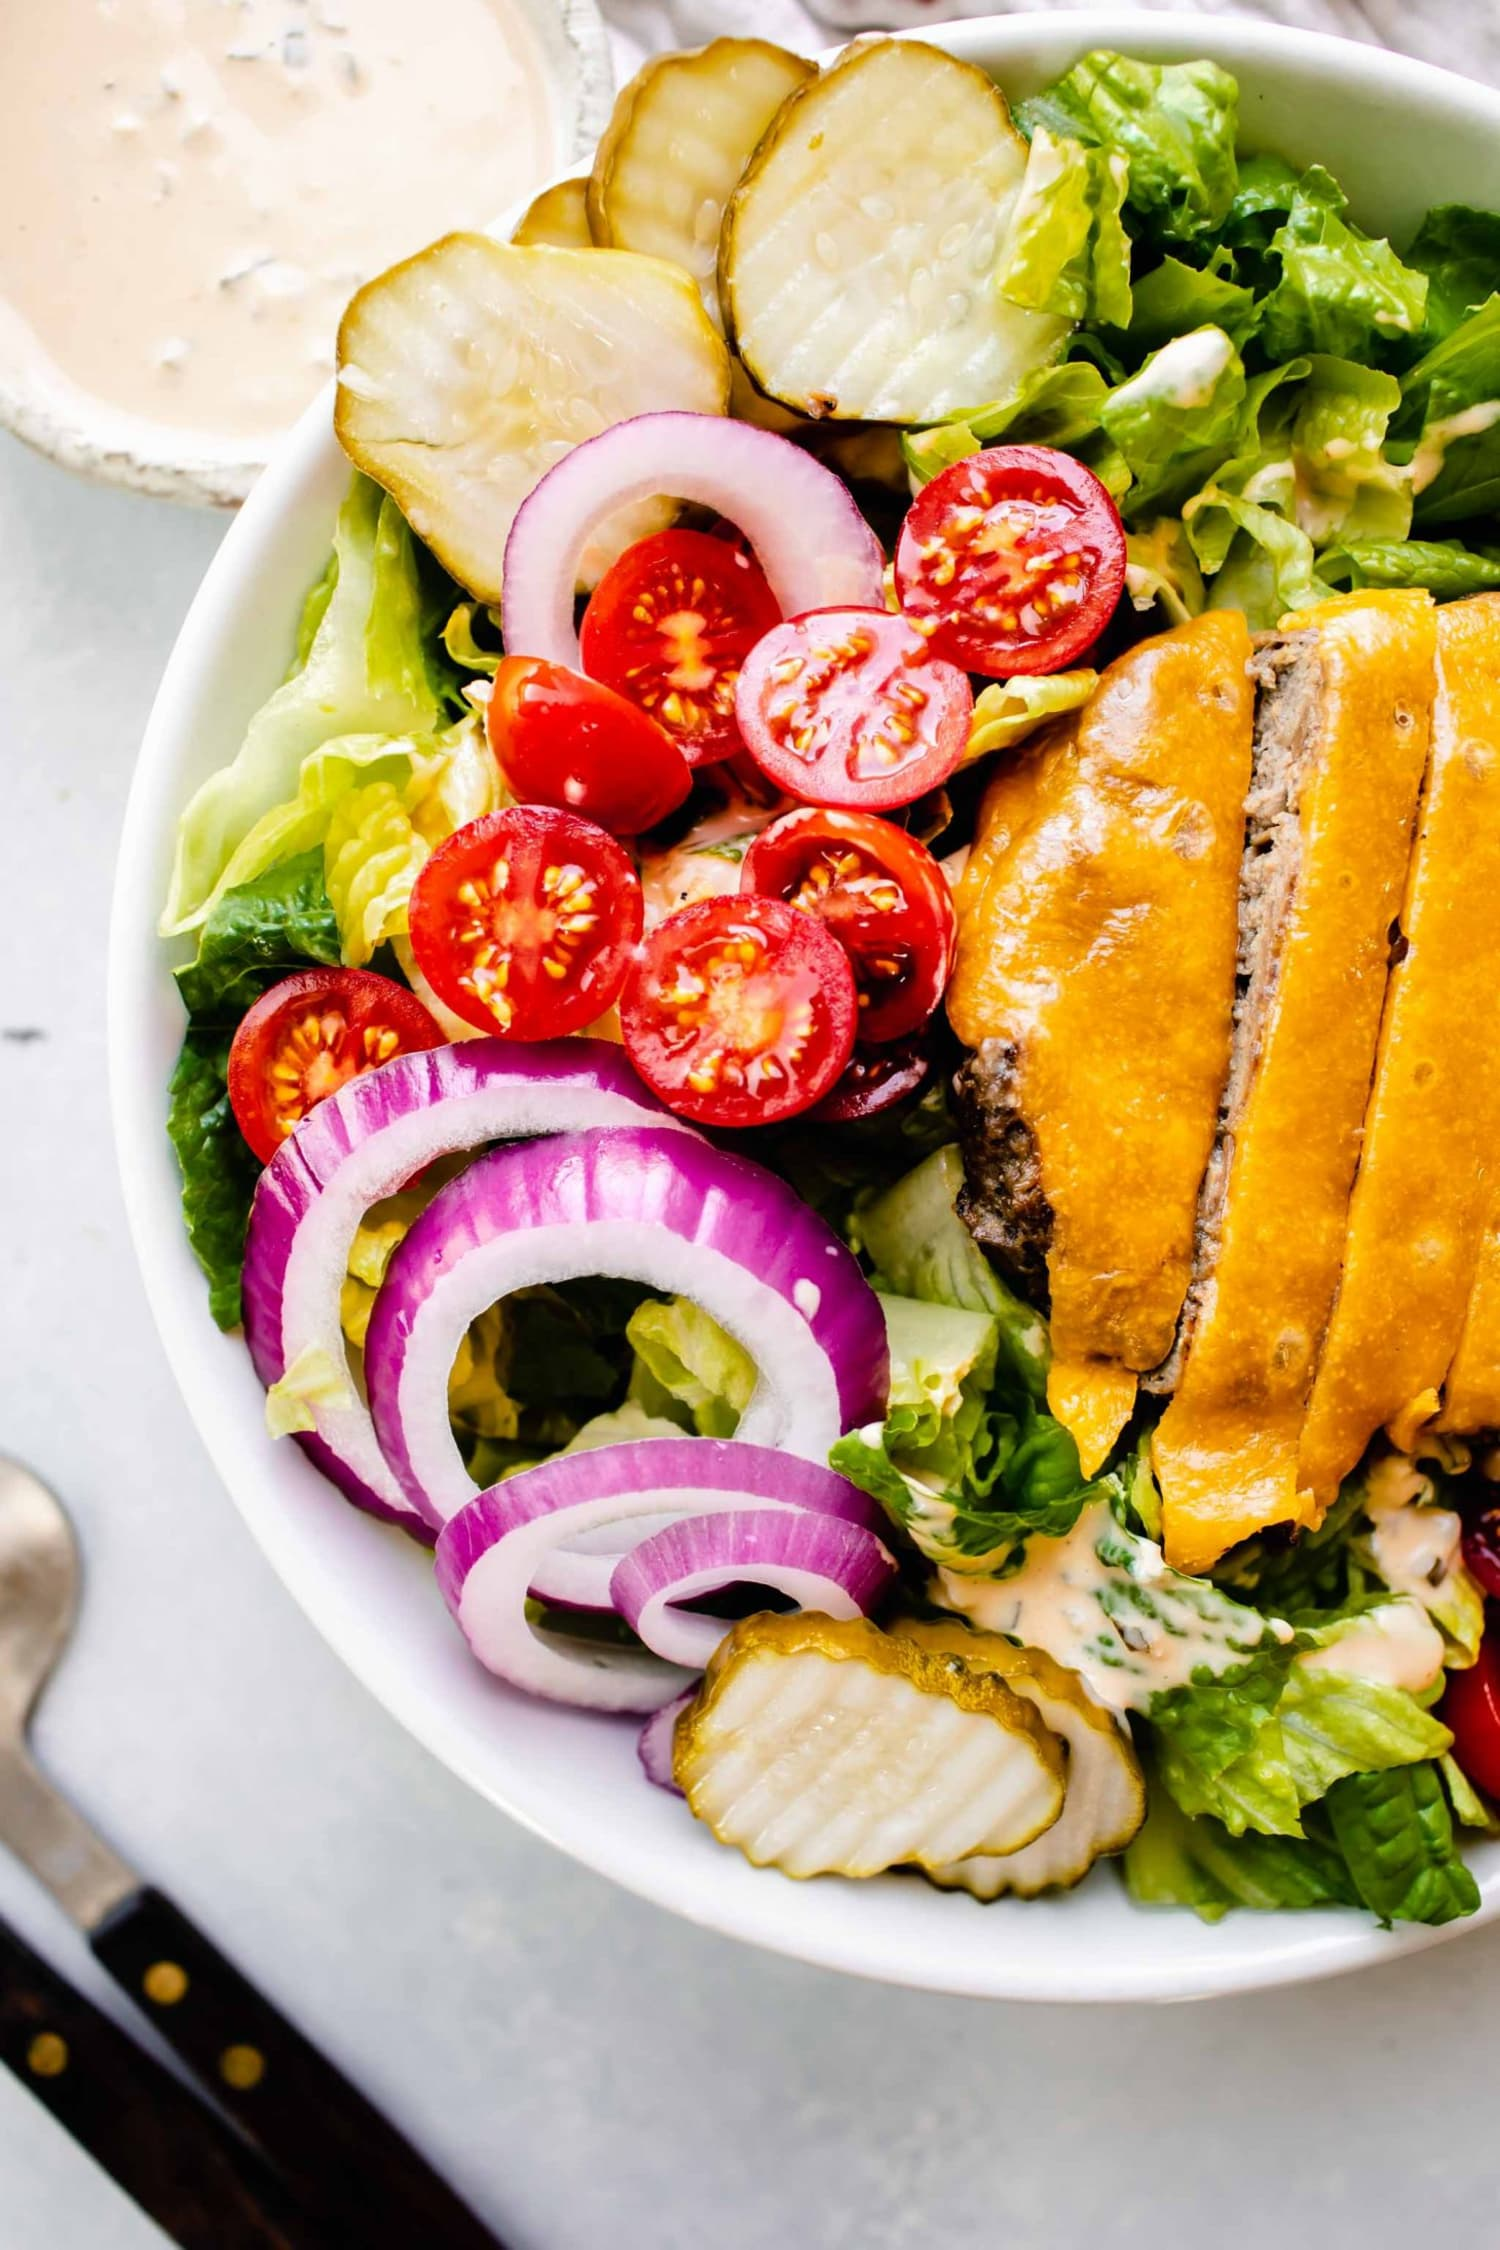 Cheeseburger Salad with Special Sauce Dressing Is a Low-Carb Version of a Drive-Thru Treat